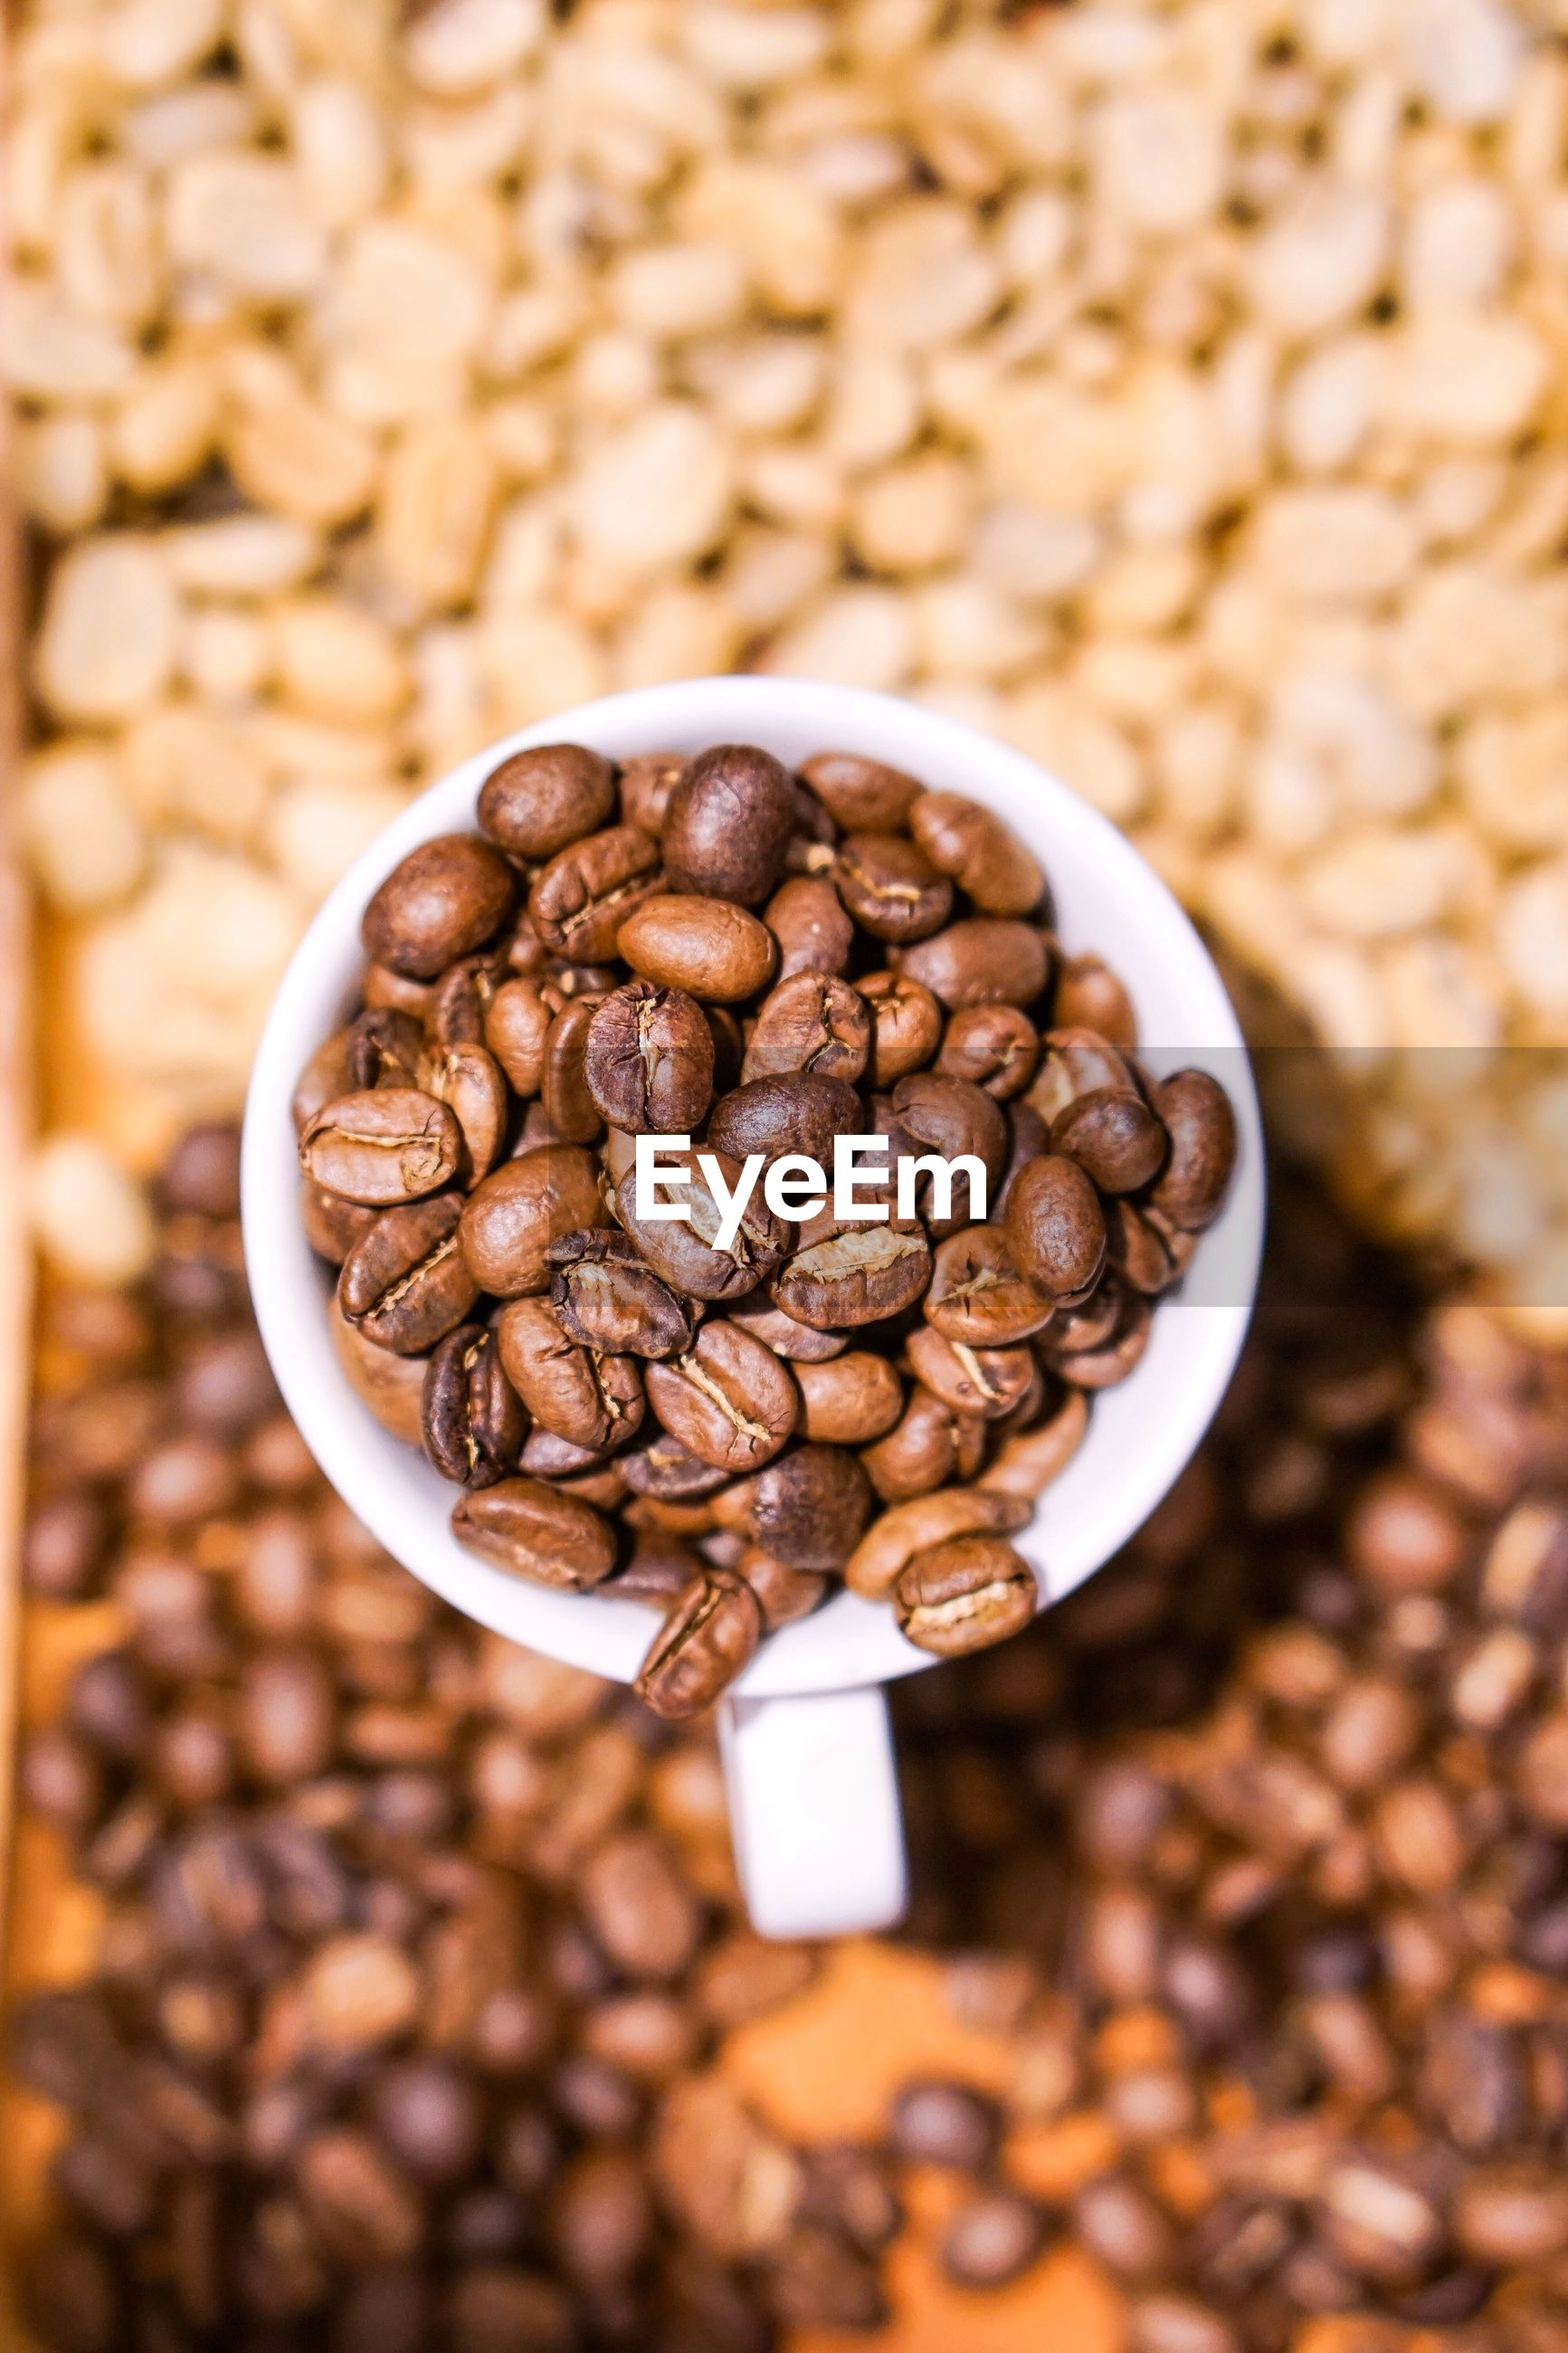 CLOSE-UP OF COFFEE BEANS IN CUP